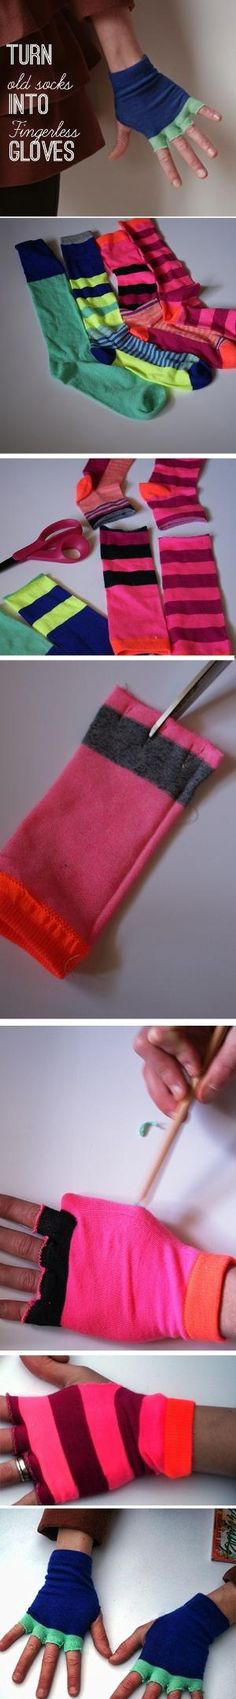 DIY gloves from old socks #DIY #crafts by Krista.S More